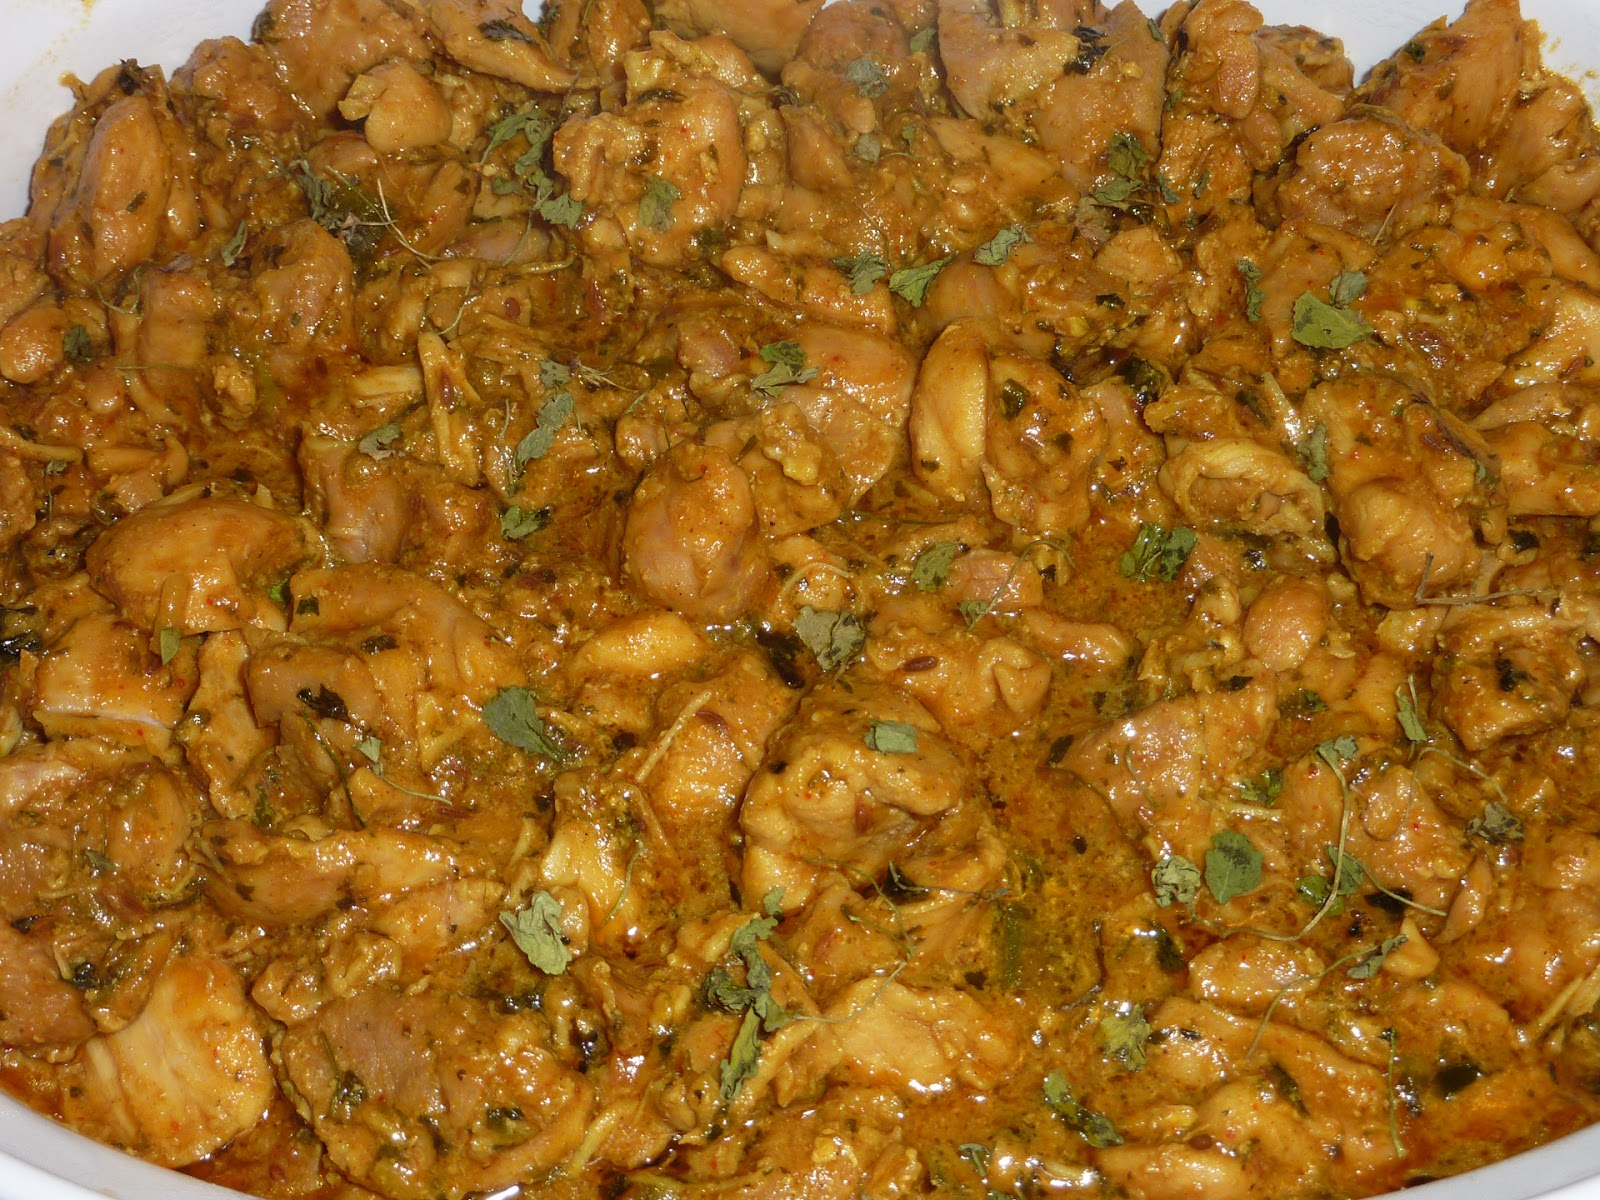 Methi Murgh-Chicken Curry with Fenugreek Leaves | eCurry - The Recipe ...